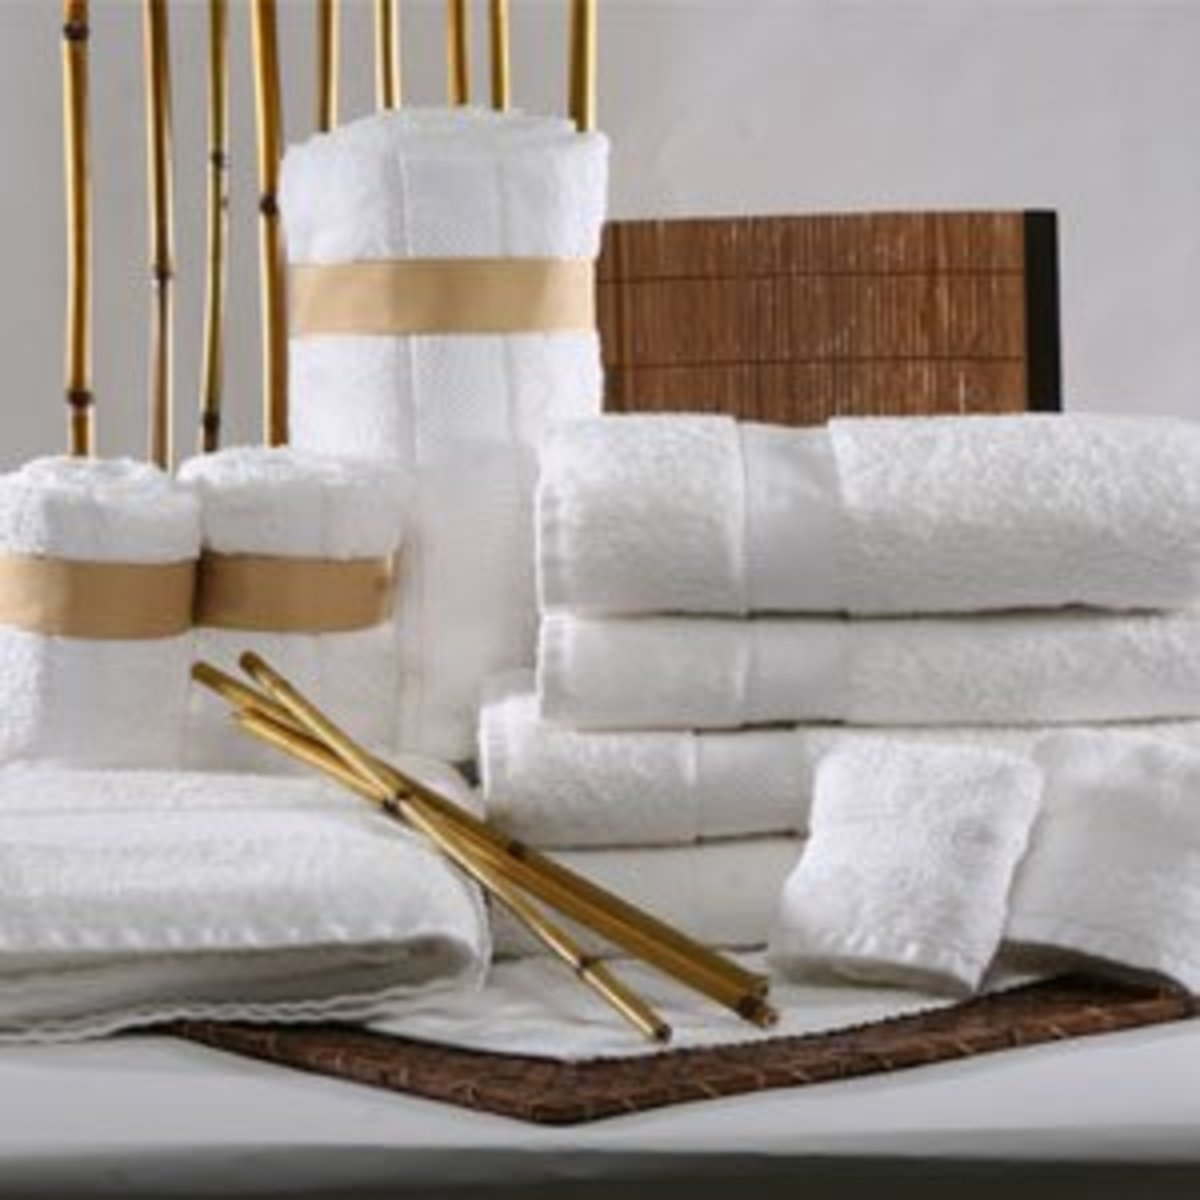 Best Luxury Bath Towels 2015 Cotton Vs. Bamboo